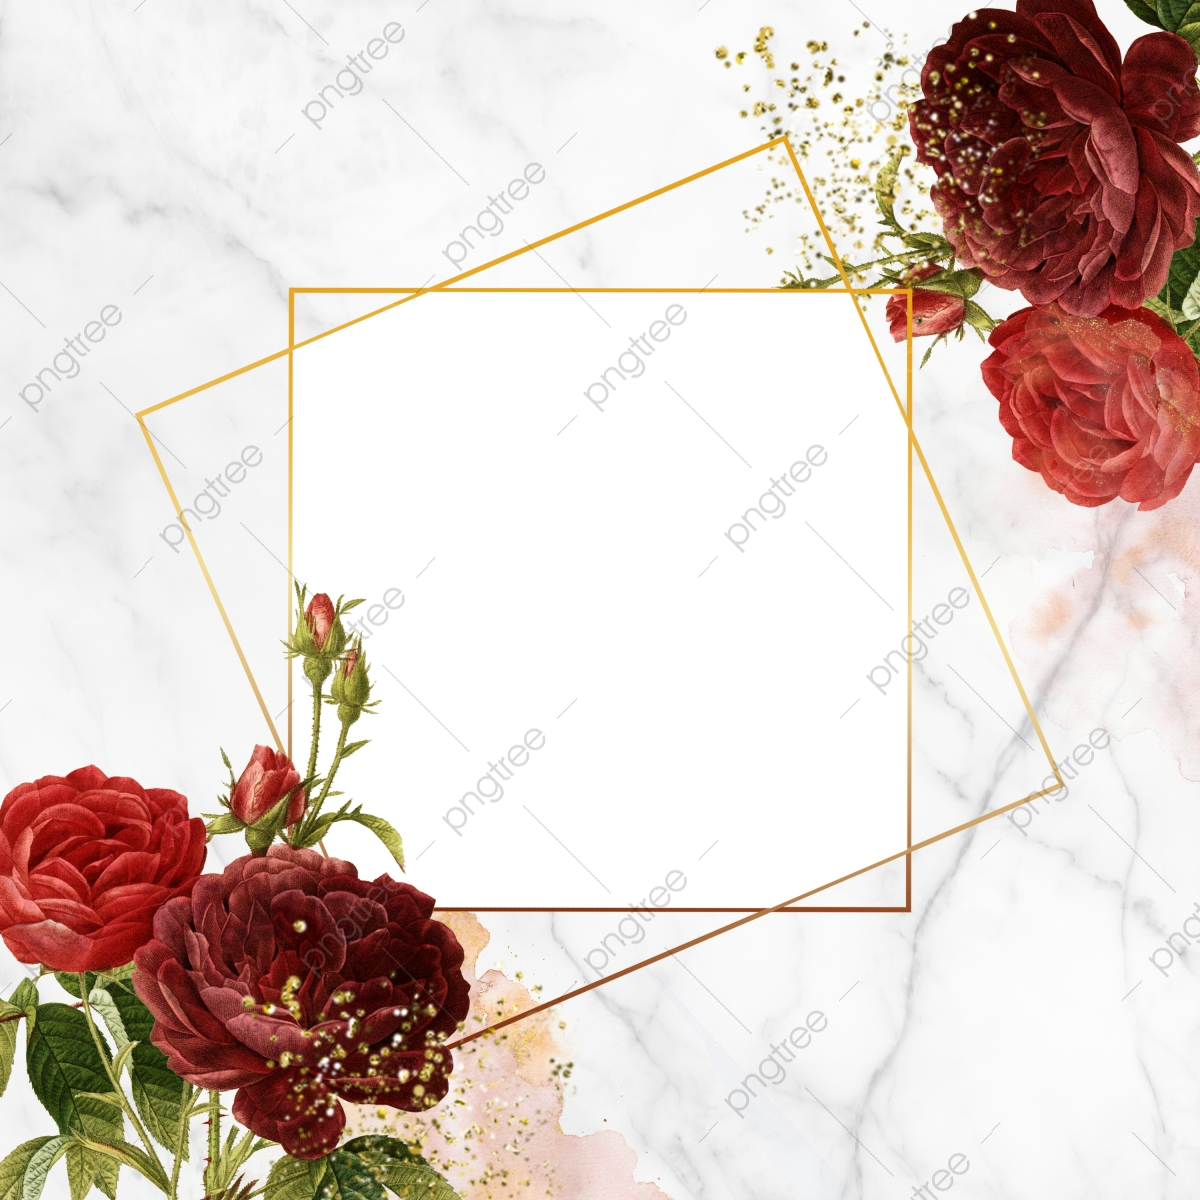 Floral Geometric Frame Rose Frame Blooming Png Transparent Clipart Image And Psd File For Free Download